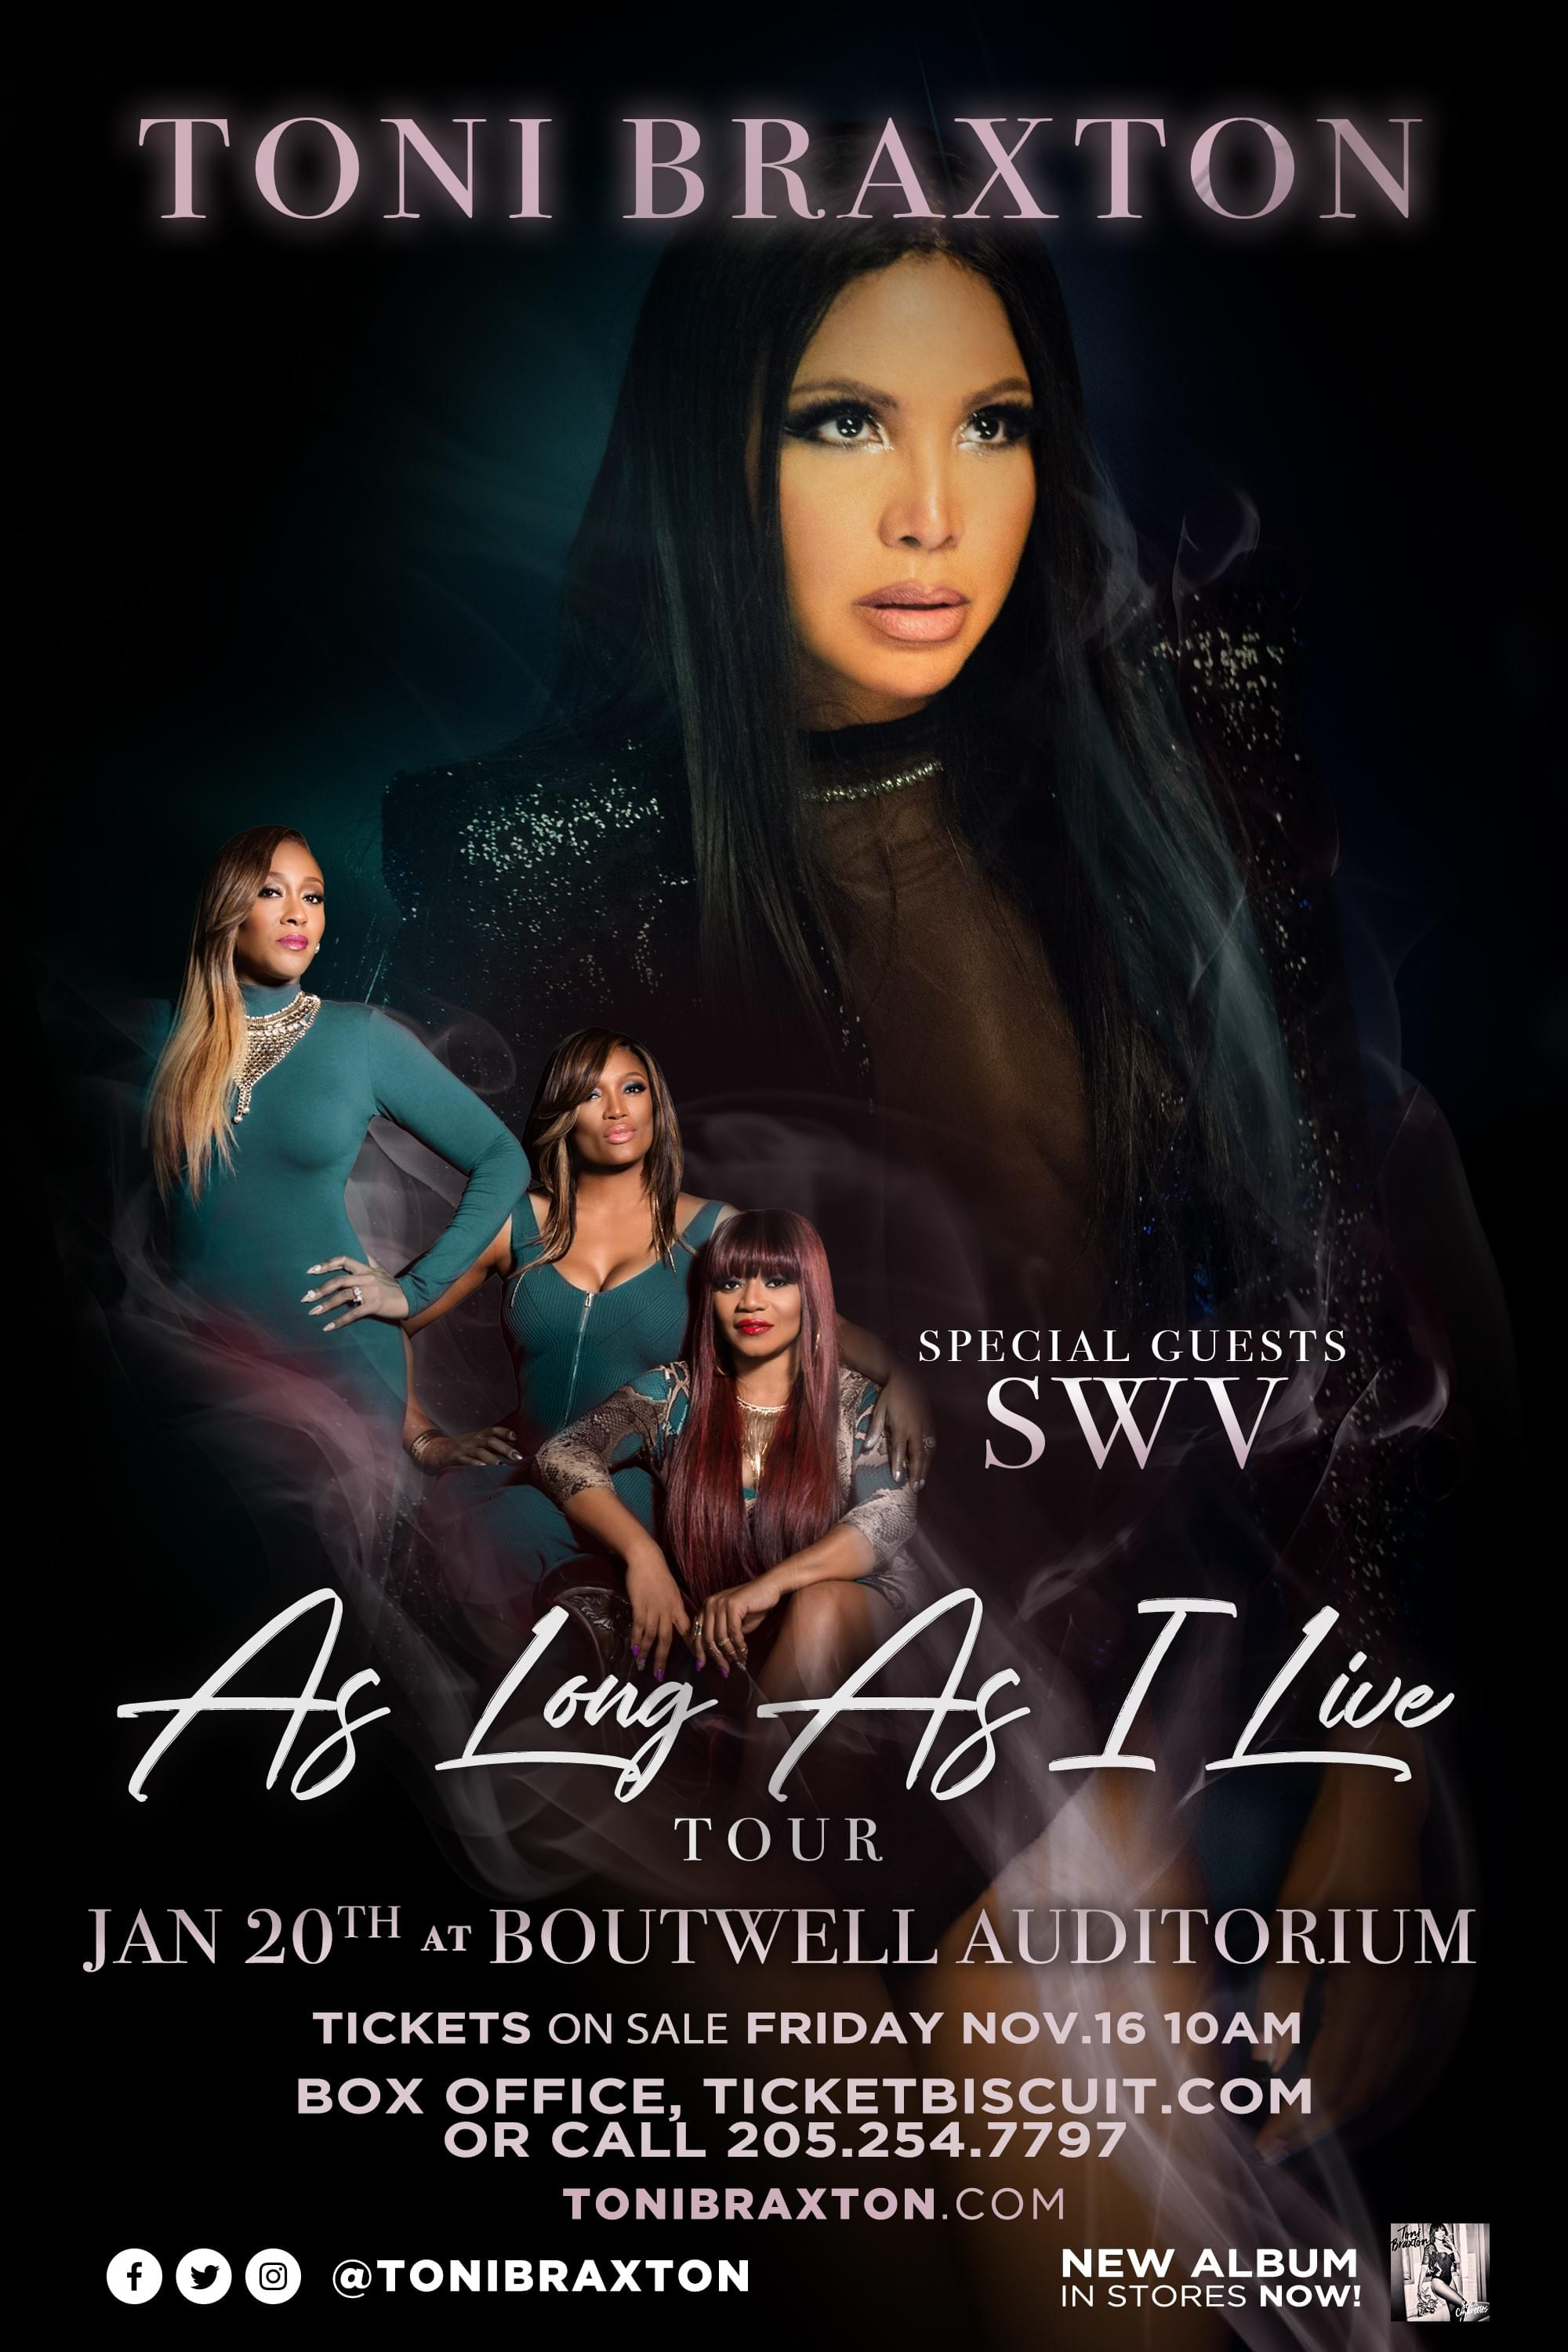 Toni Braxton and SWV at Boutwell